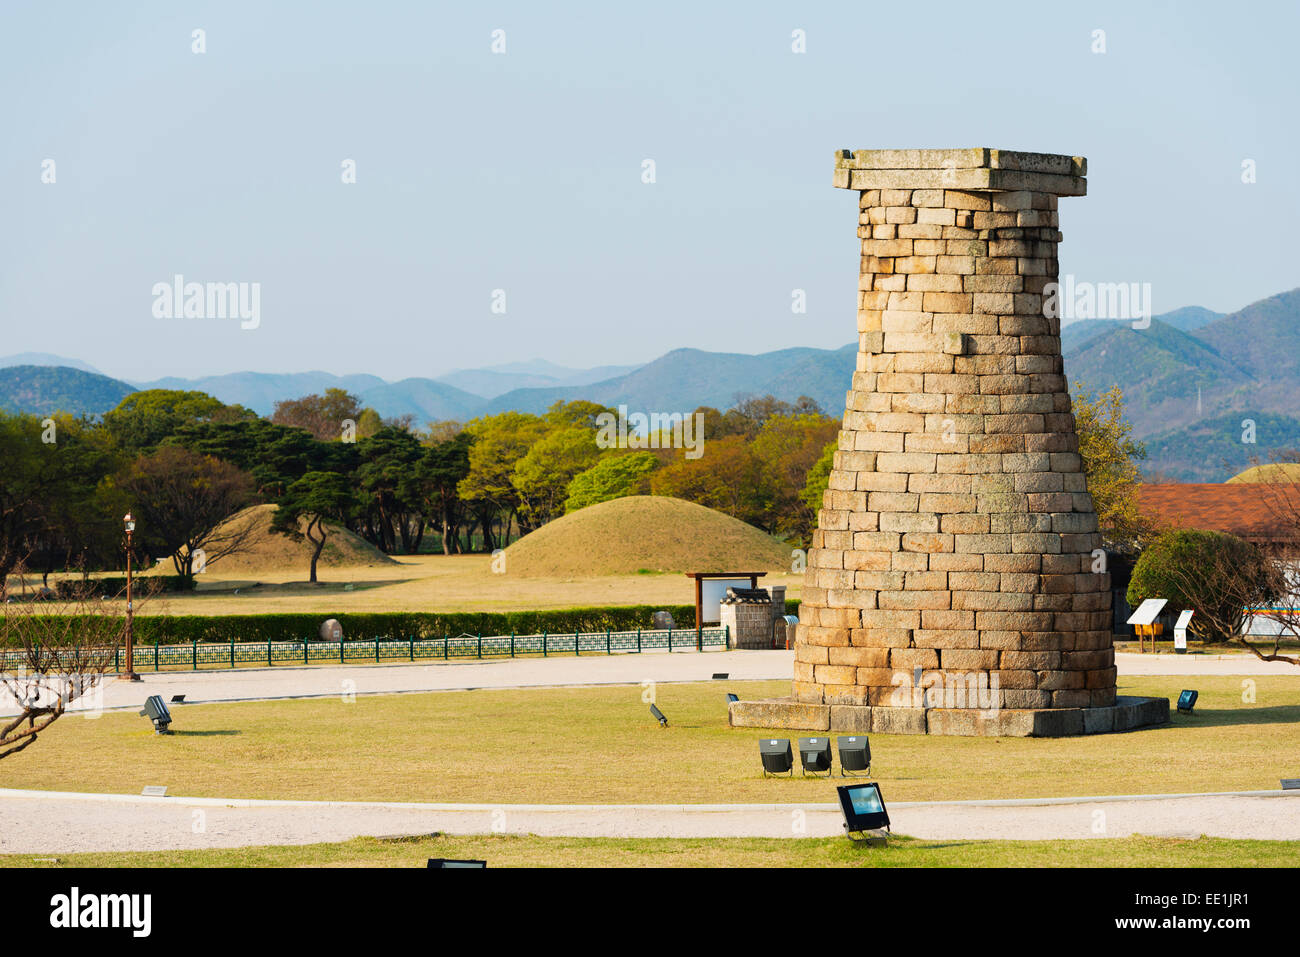 Cheomseongdae Astronomical Observation Tower, Royal Tombs burial mounds, UNESCO, Gyeongju, Gyeongsangbuk-do, South - Stock Image